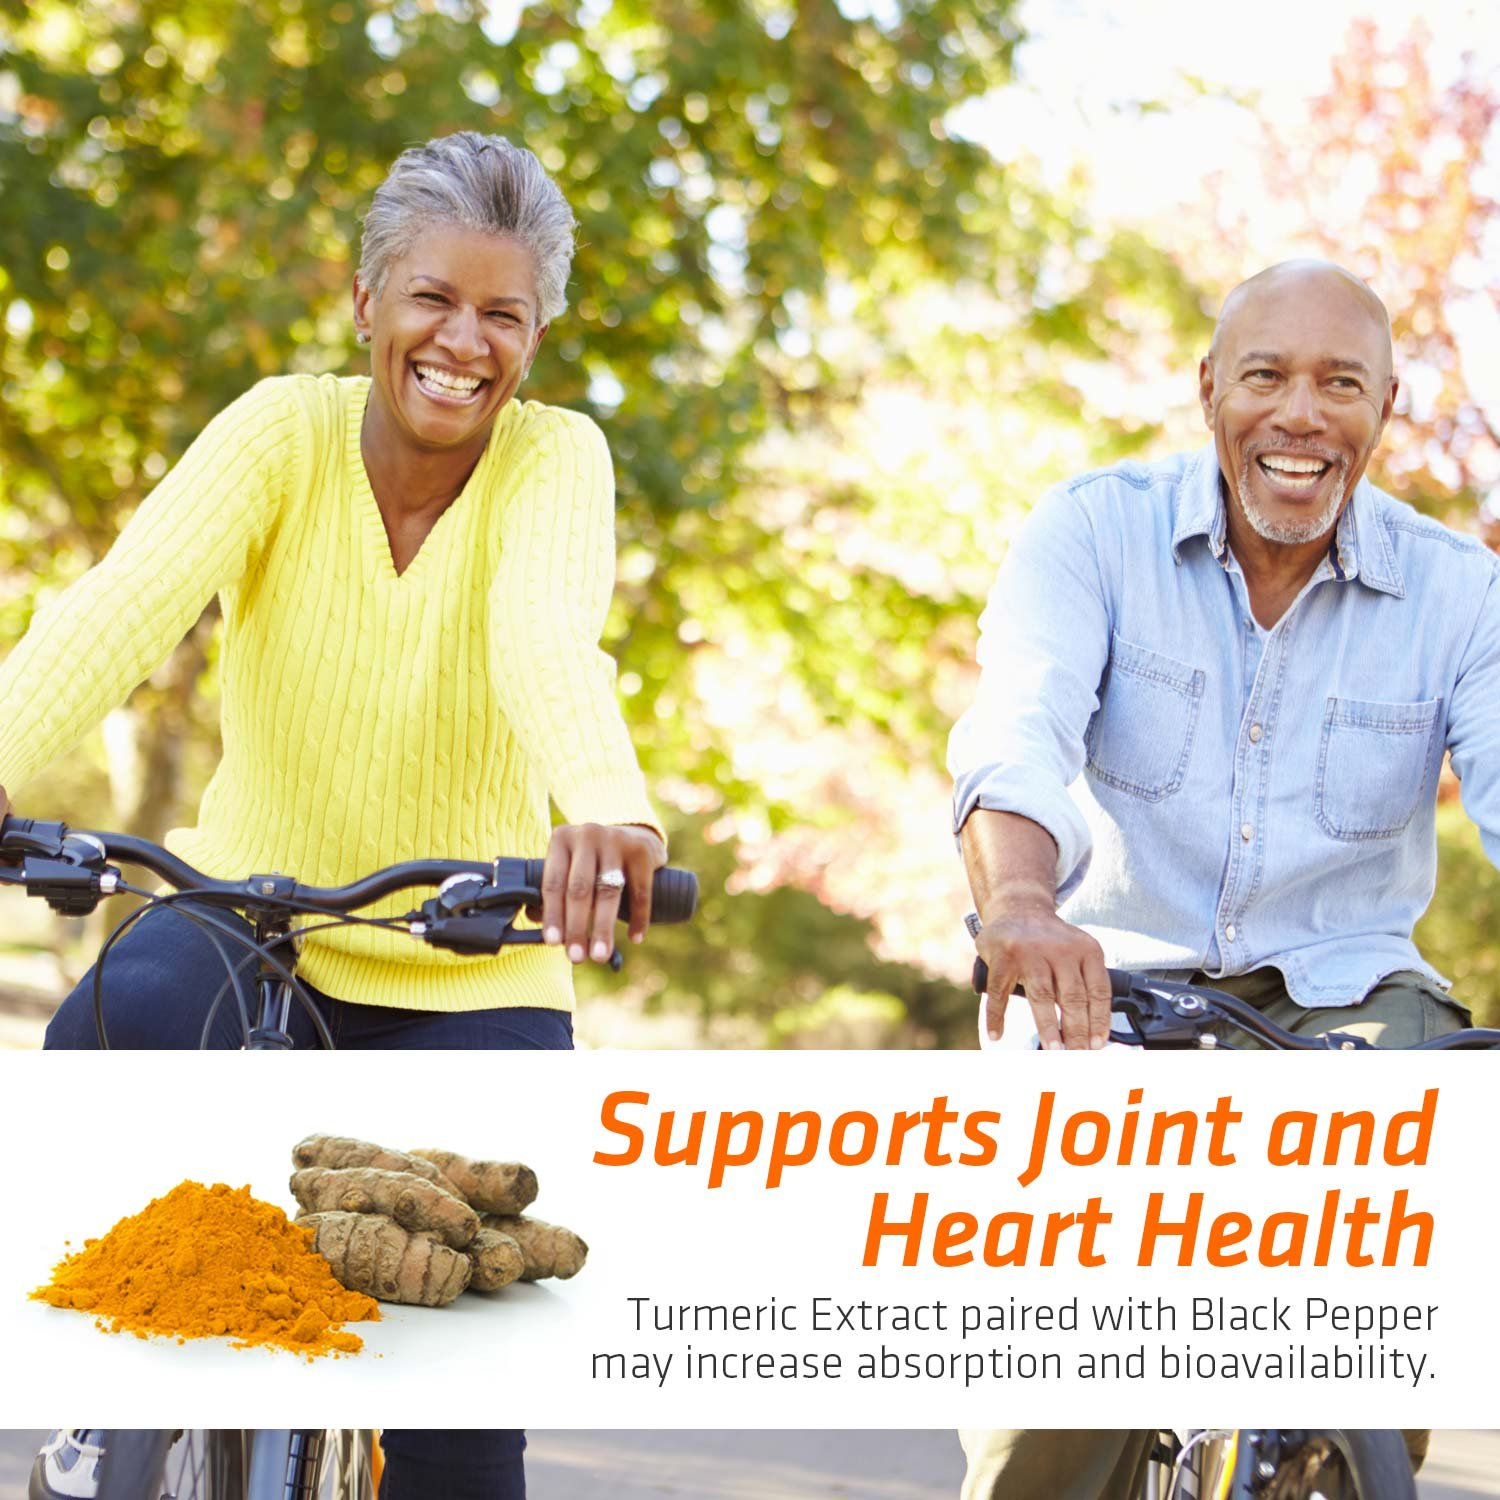 Turmeric Curcumin Max Potency 95% Curcuminoids 1950mg with Bioperine Black Pepper for Best Absorption, Anti-Inflammatory Joint Relief, Turmeric Supplement Pills by Natures Nutrition - 180 Capsules by Nature's Nutrition (Image #3)